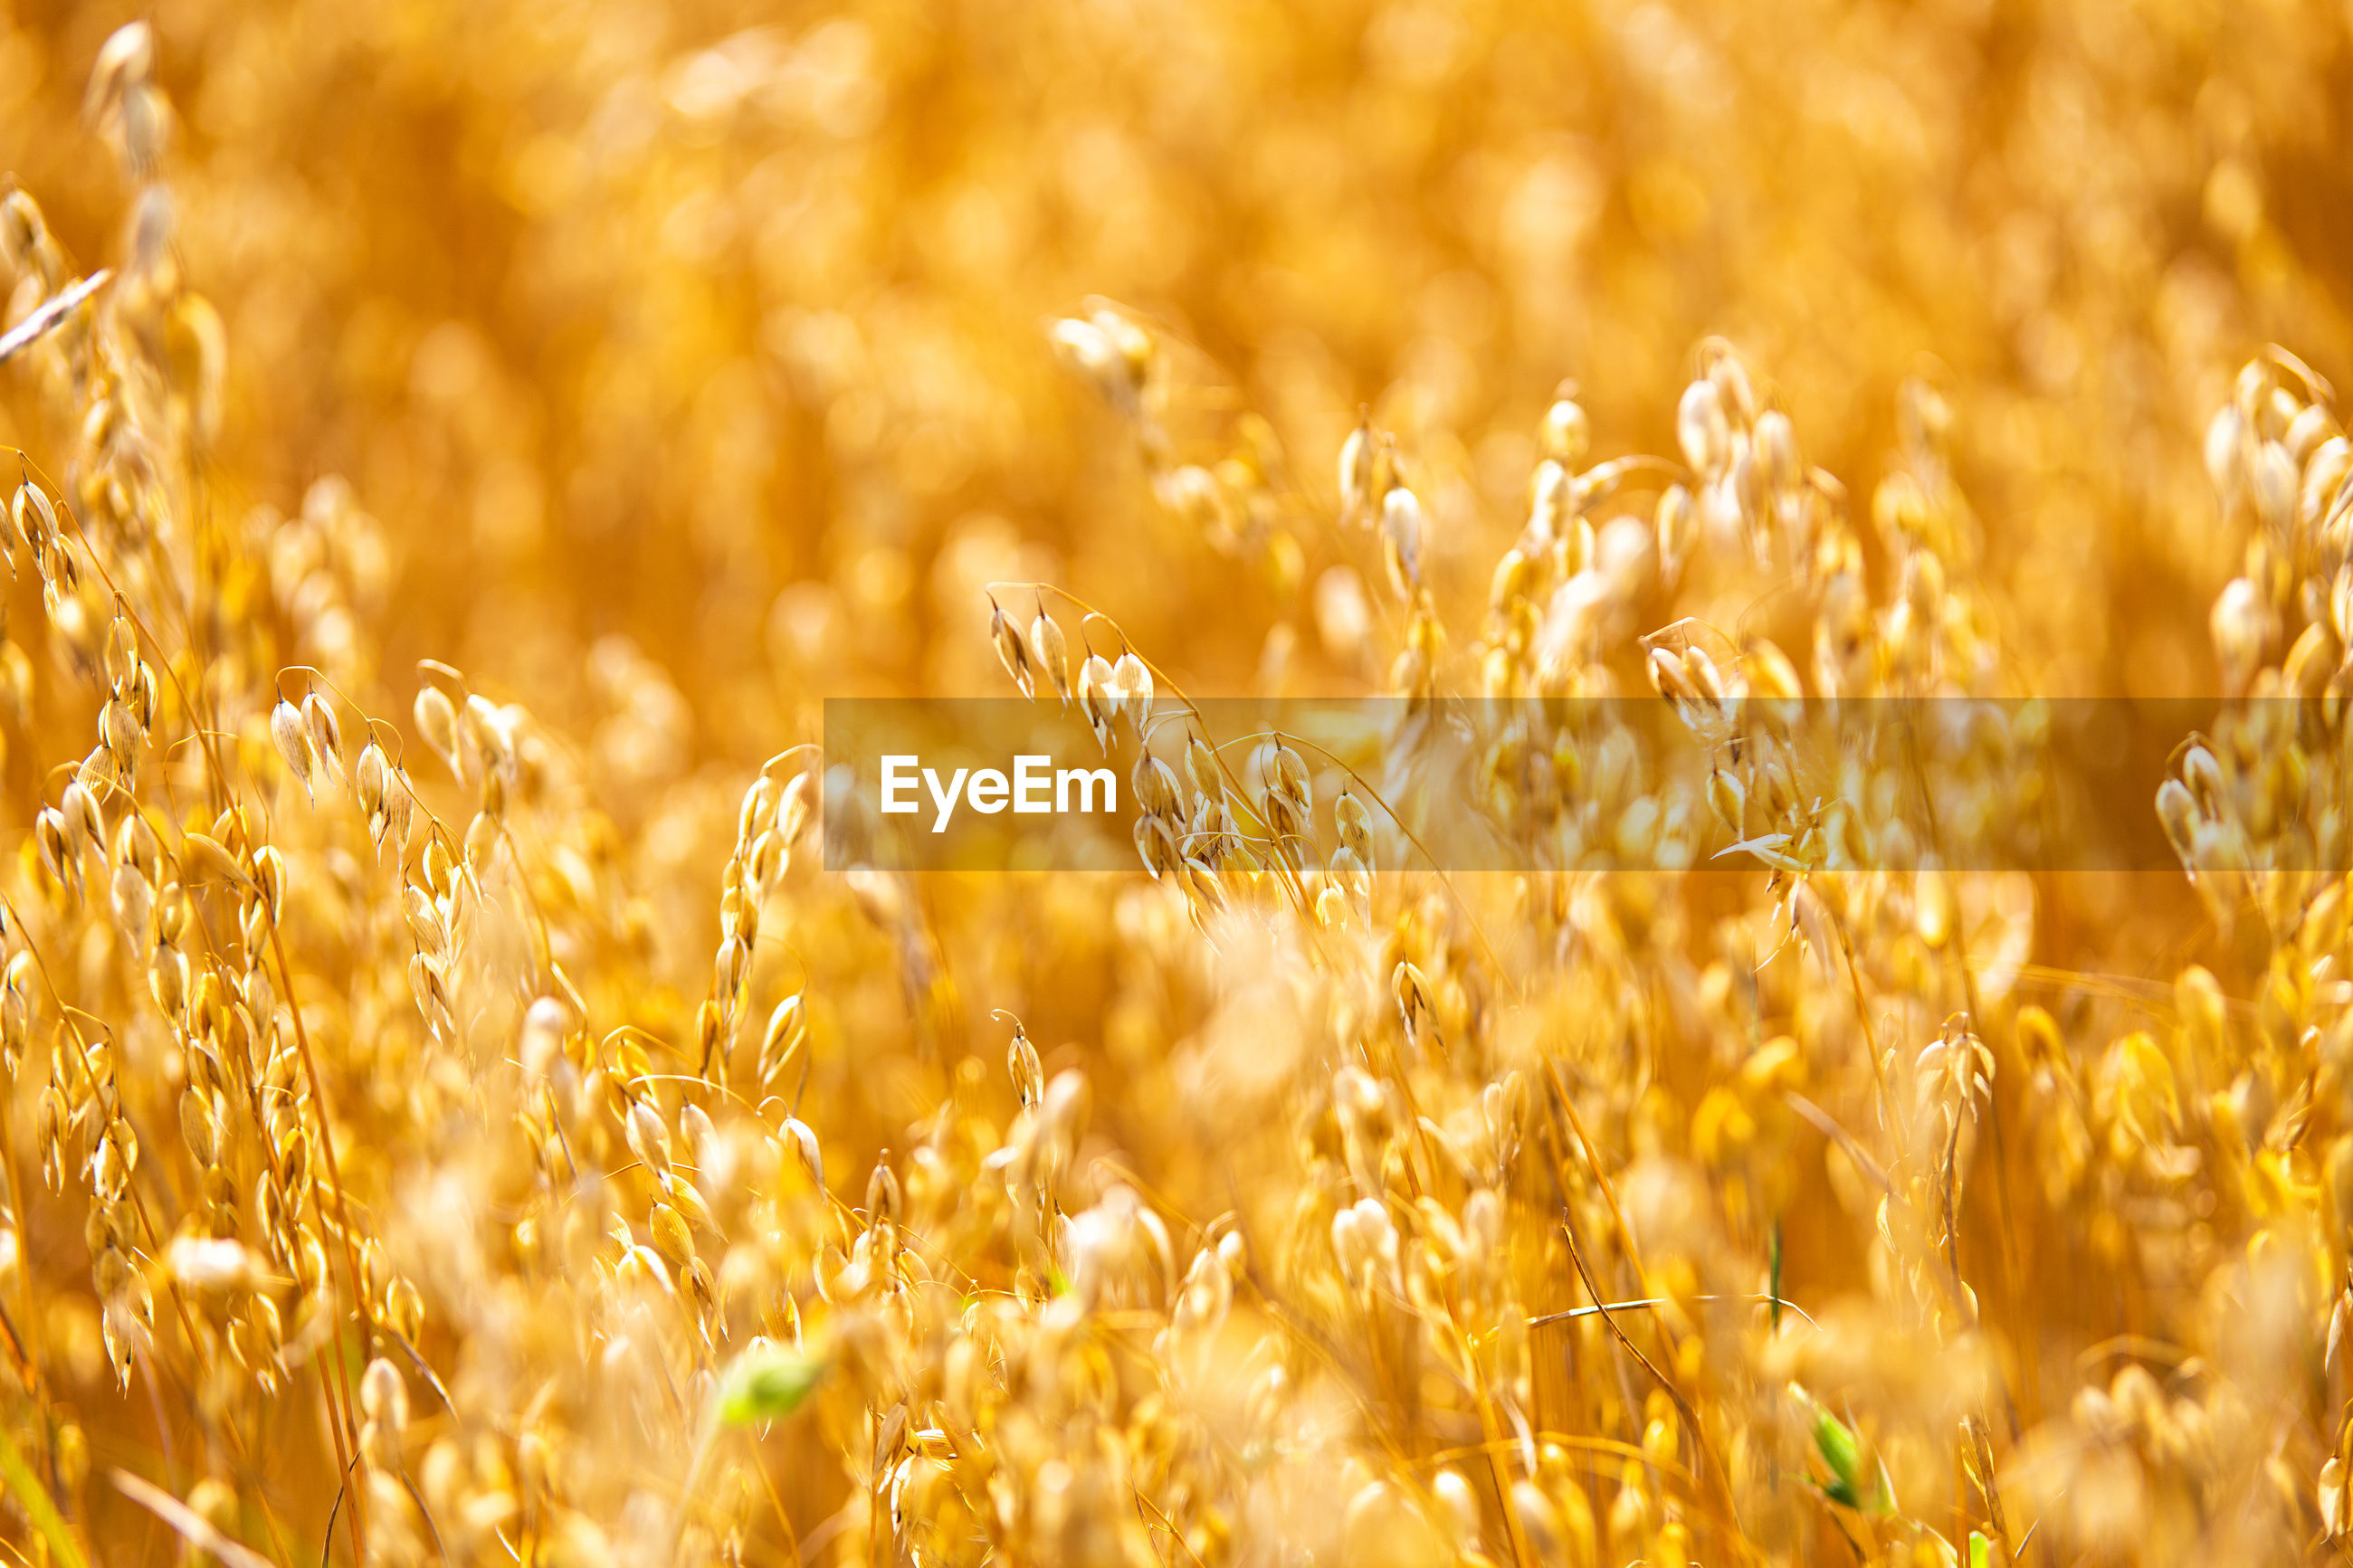 FULL FRAME SHOT OF FRESH YELLOW CROP FIELD